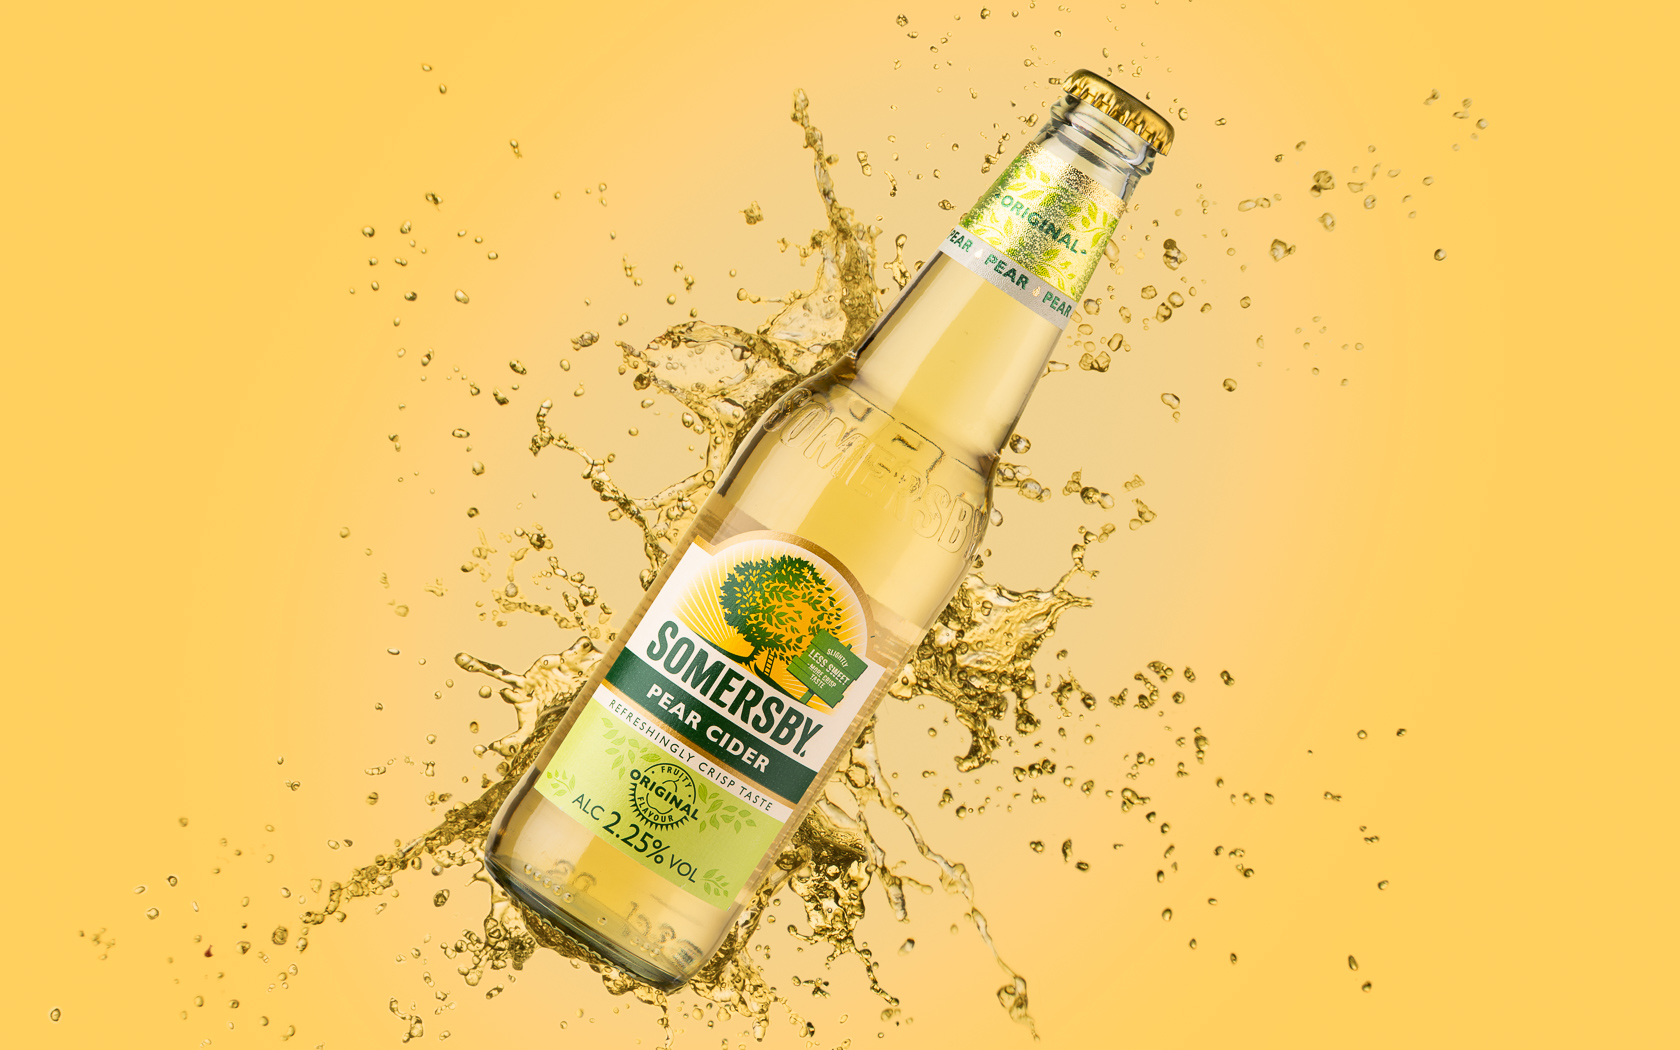 Somersby pear cider food and beverage photography